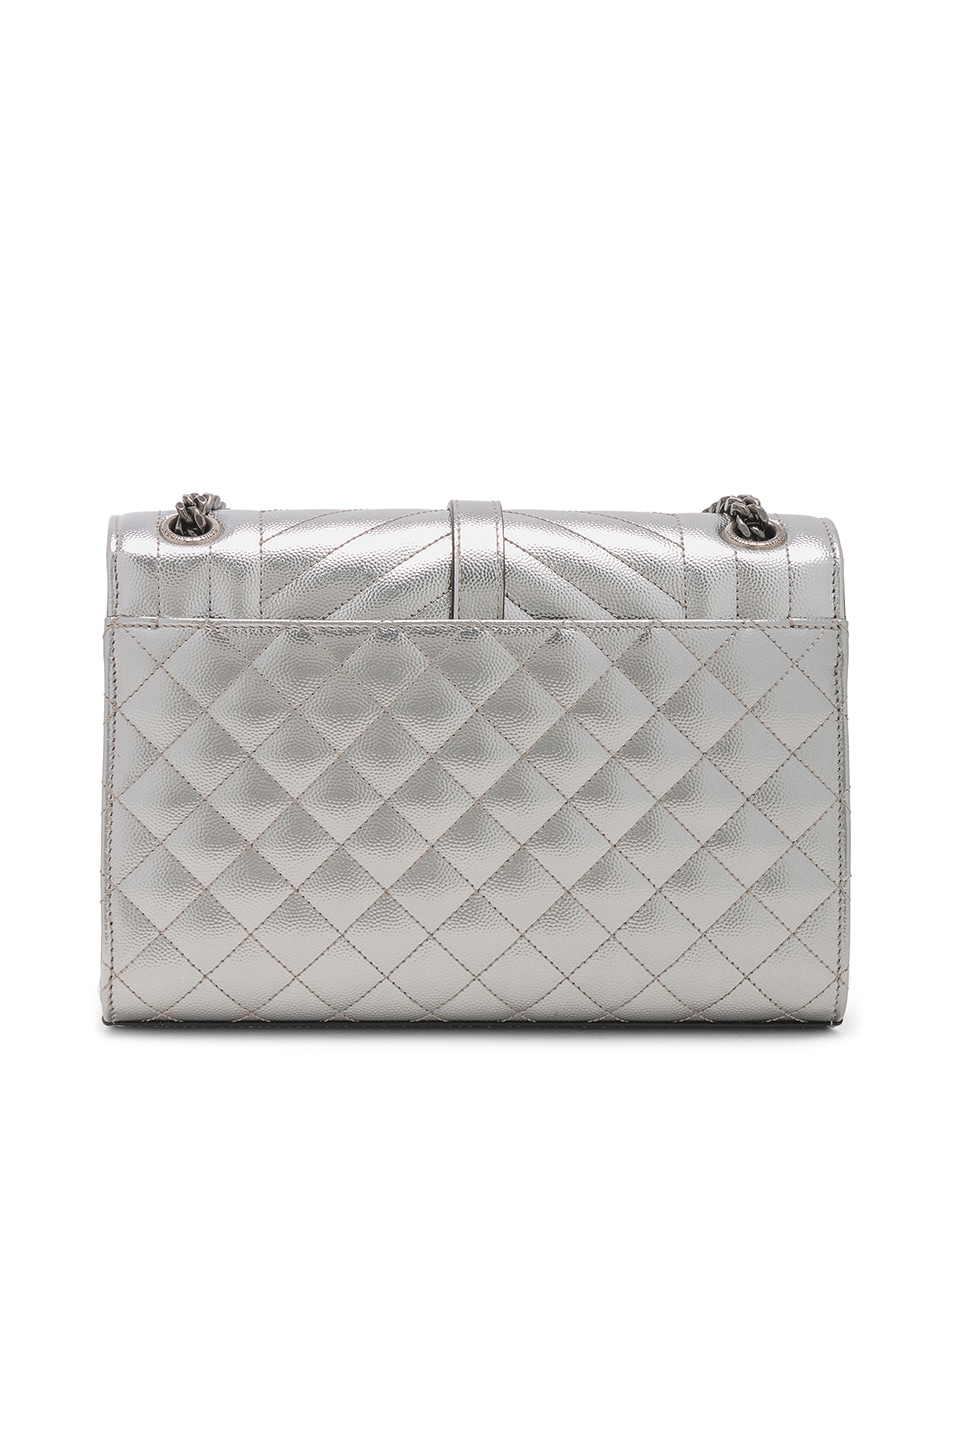 Image 3 of Saint Laurent Medium Envelope Monogramme Bag in Silver